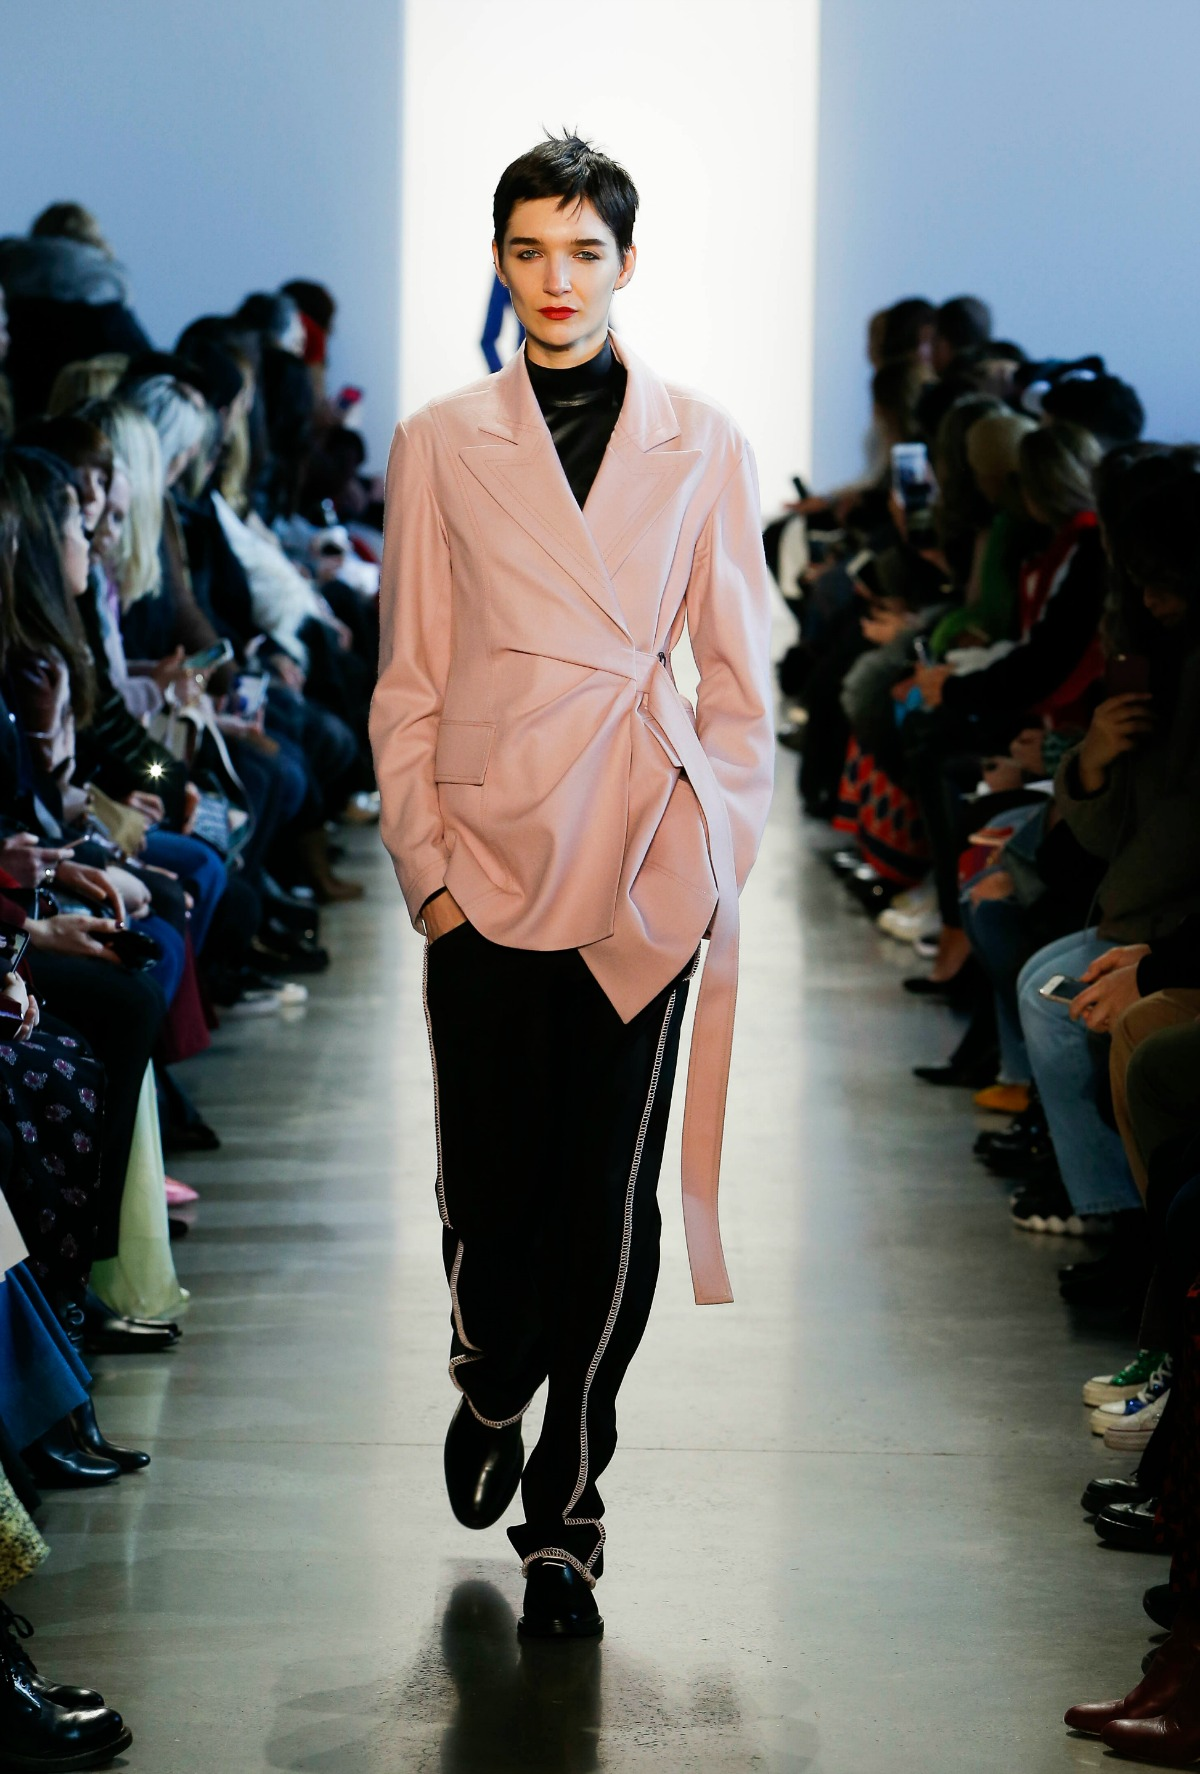 COLOVOS Fall 2018 Runway at NYFW I Millennial Pink Jacket #NYFW #WinterFashion